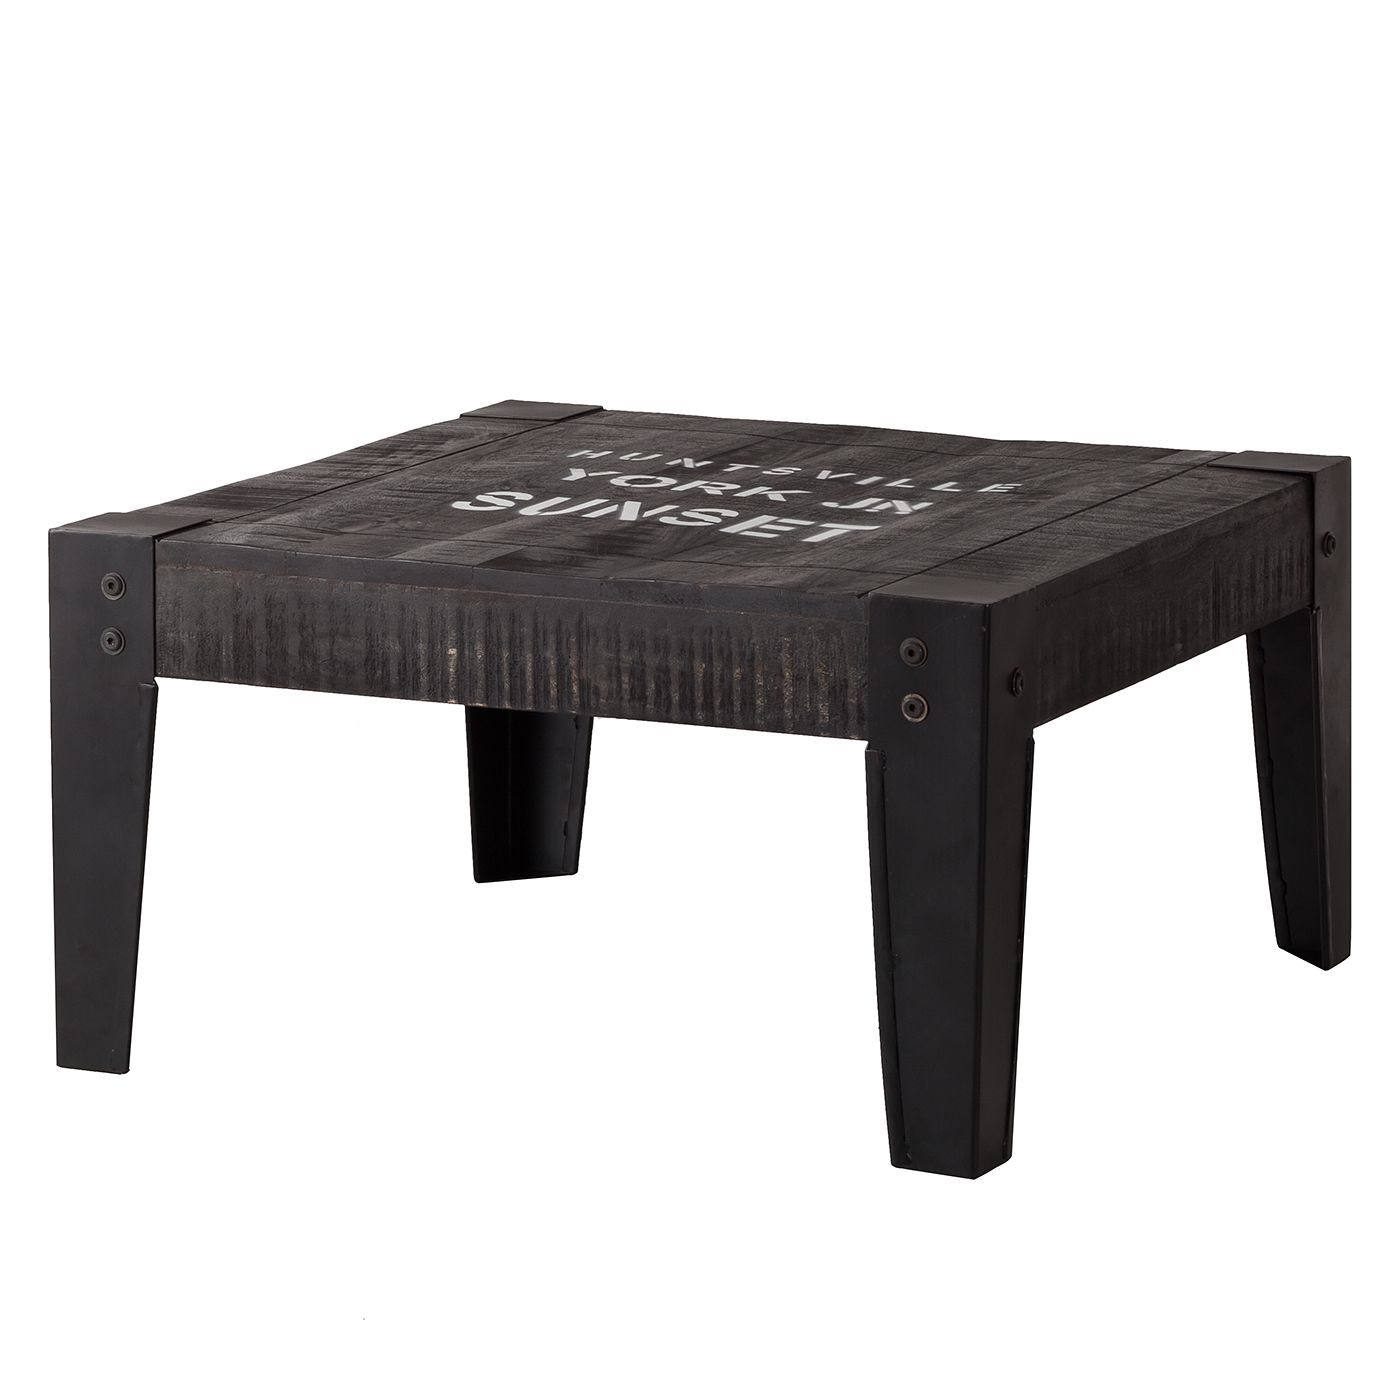 Table basse keyport manguier massif gris cendres noir 75 x 75 cm ars - Table basse manguier ...